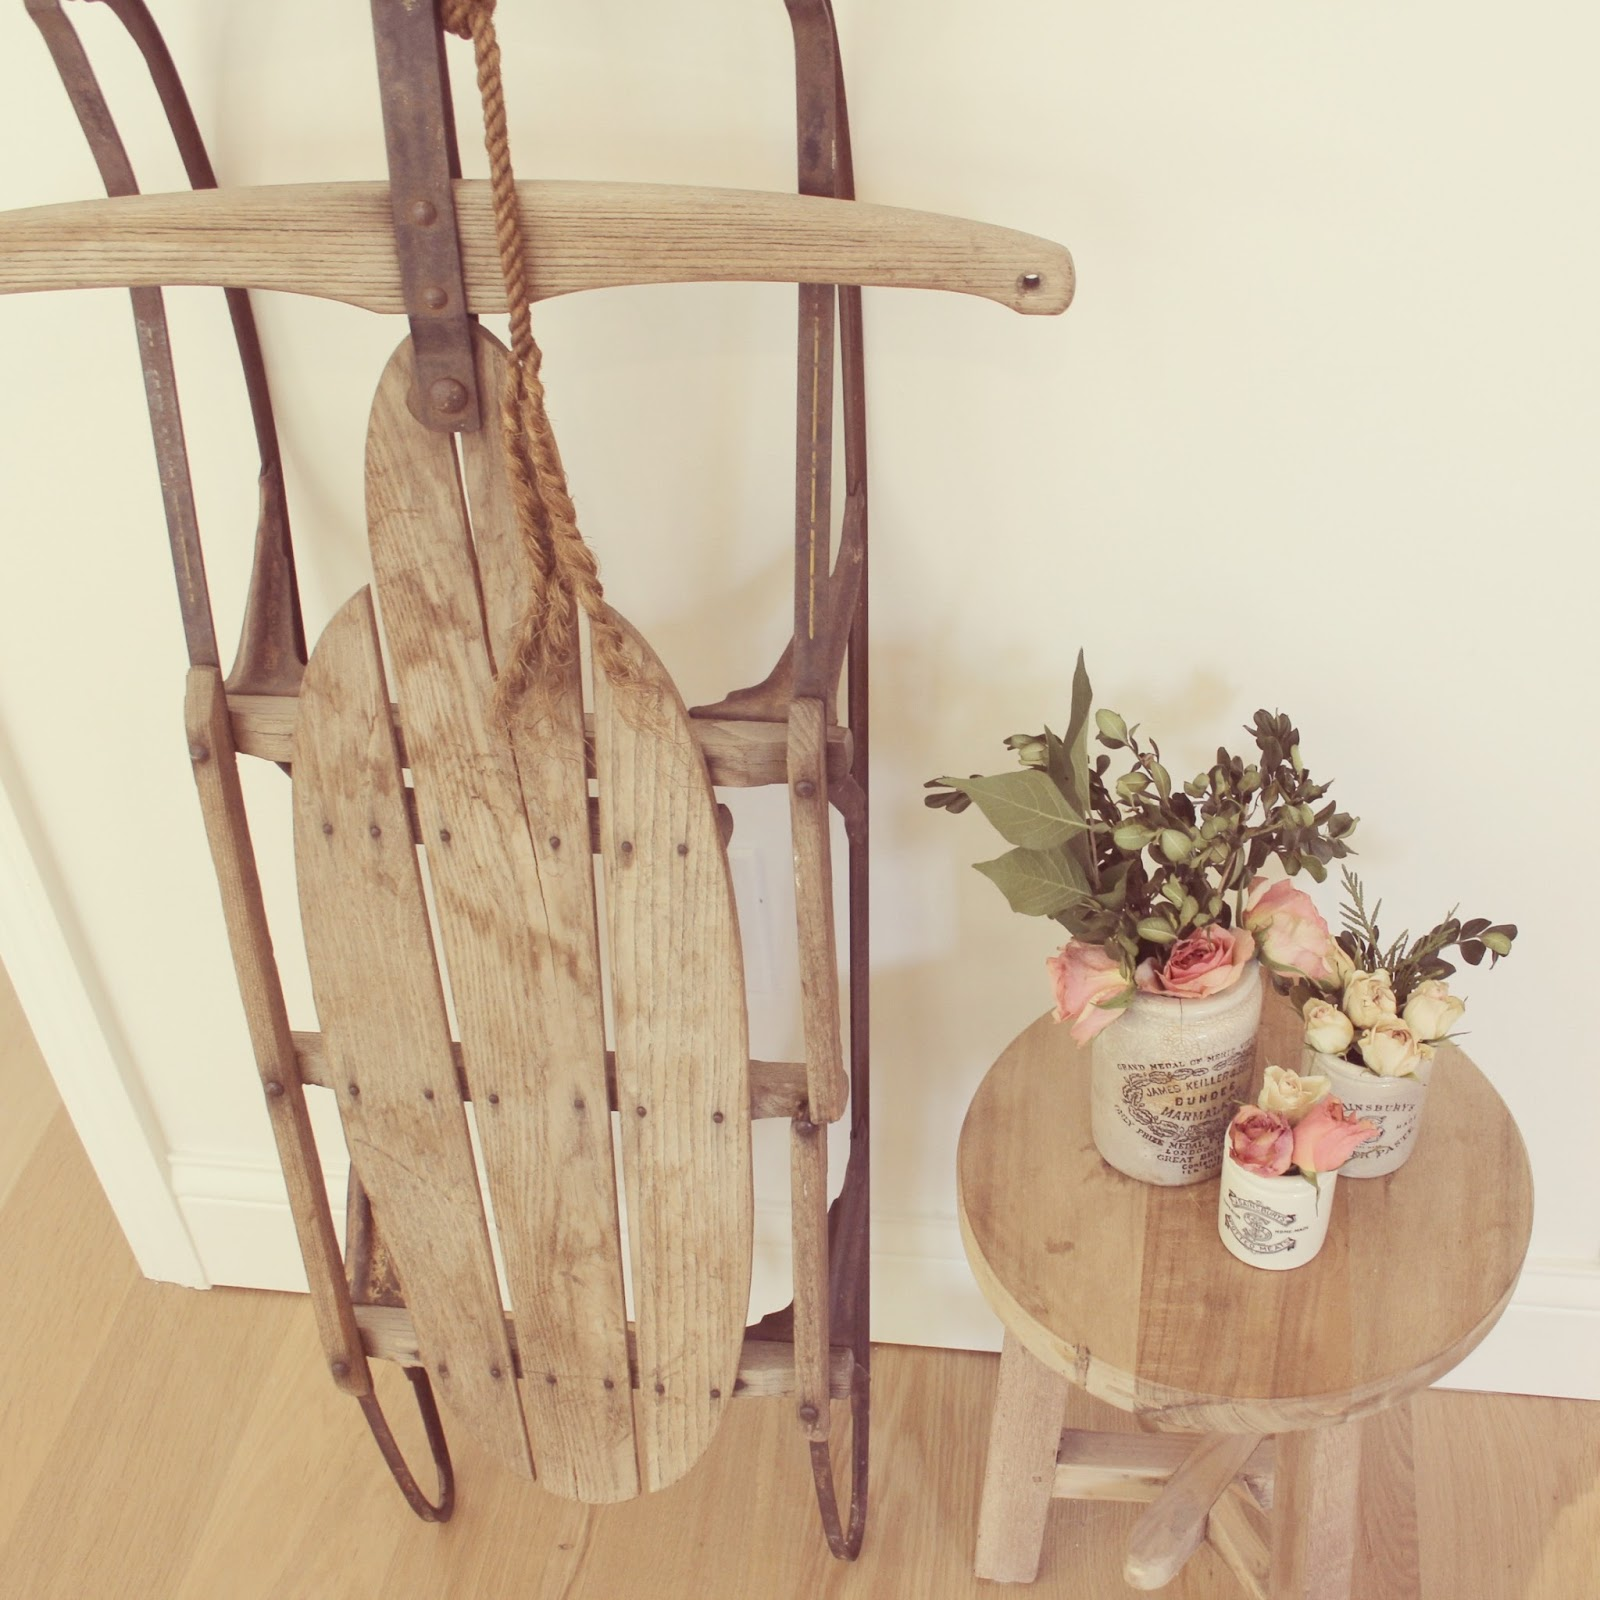 Vintage sled, rustic stool, marmalade jars with flowers